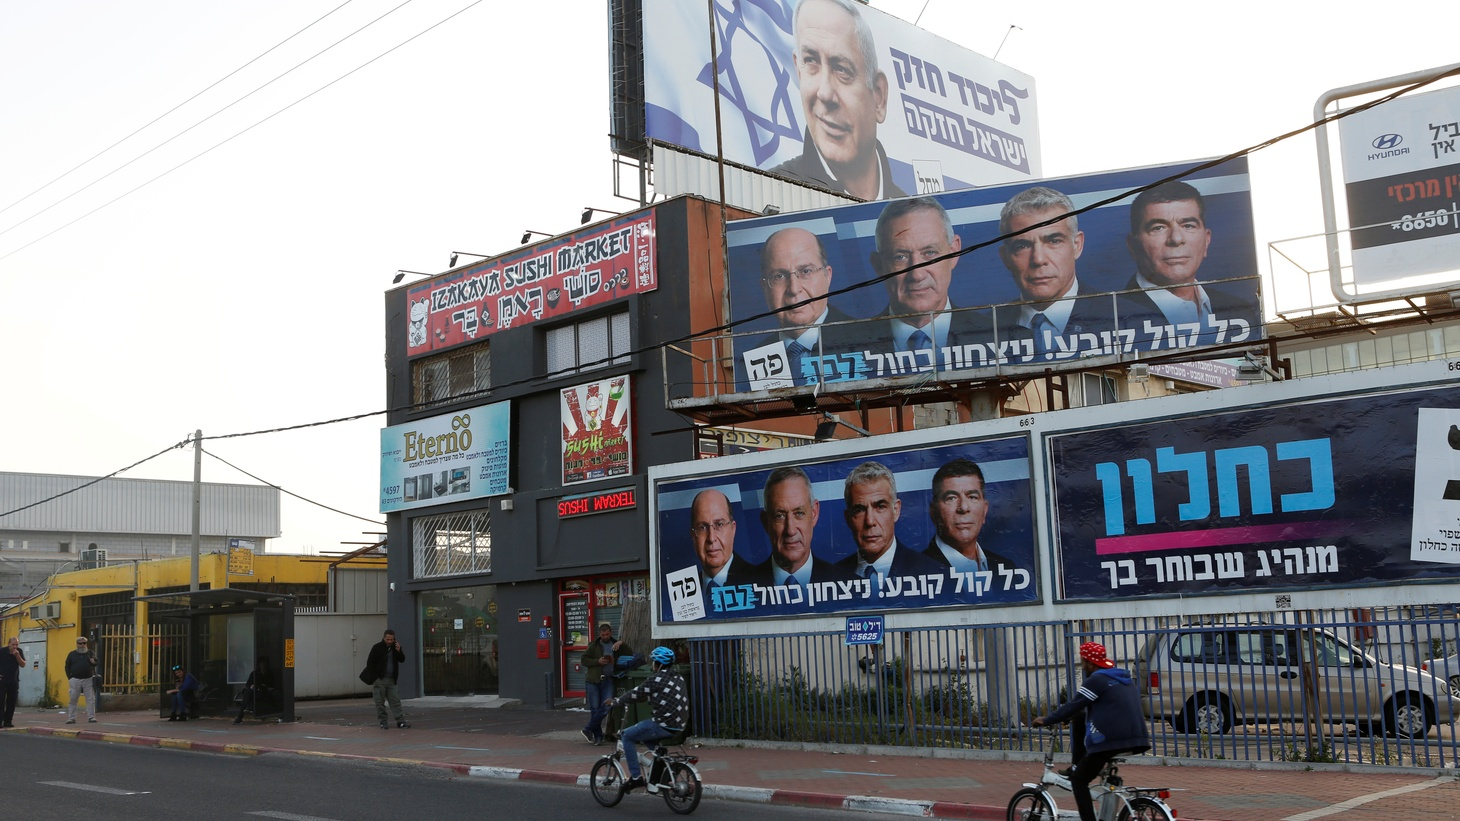 Cyclists ride past a Likud party election campaign billboard depicting Israeli Prime Minister Benjamin Netanyahu and billboards depicting Benny Gantz, leader of Blue and White party, together with his top party candidates Moshe Yaalon, Yair Lapid and Gaby Ashkenazi, in Petah Tikva, Israel April 7, 2019.